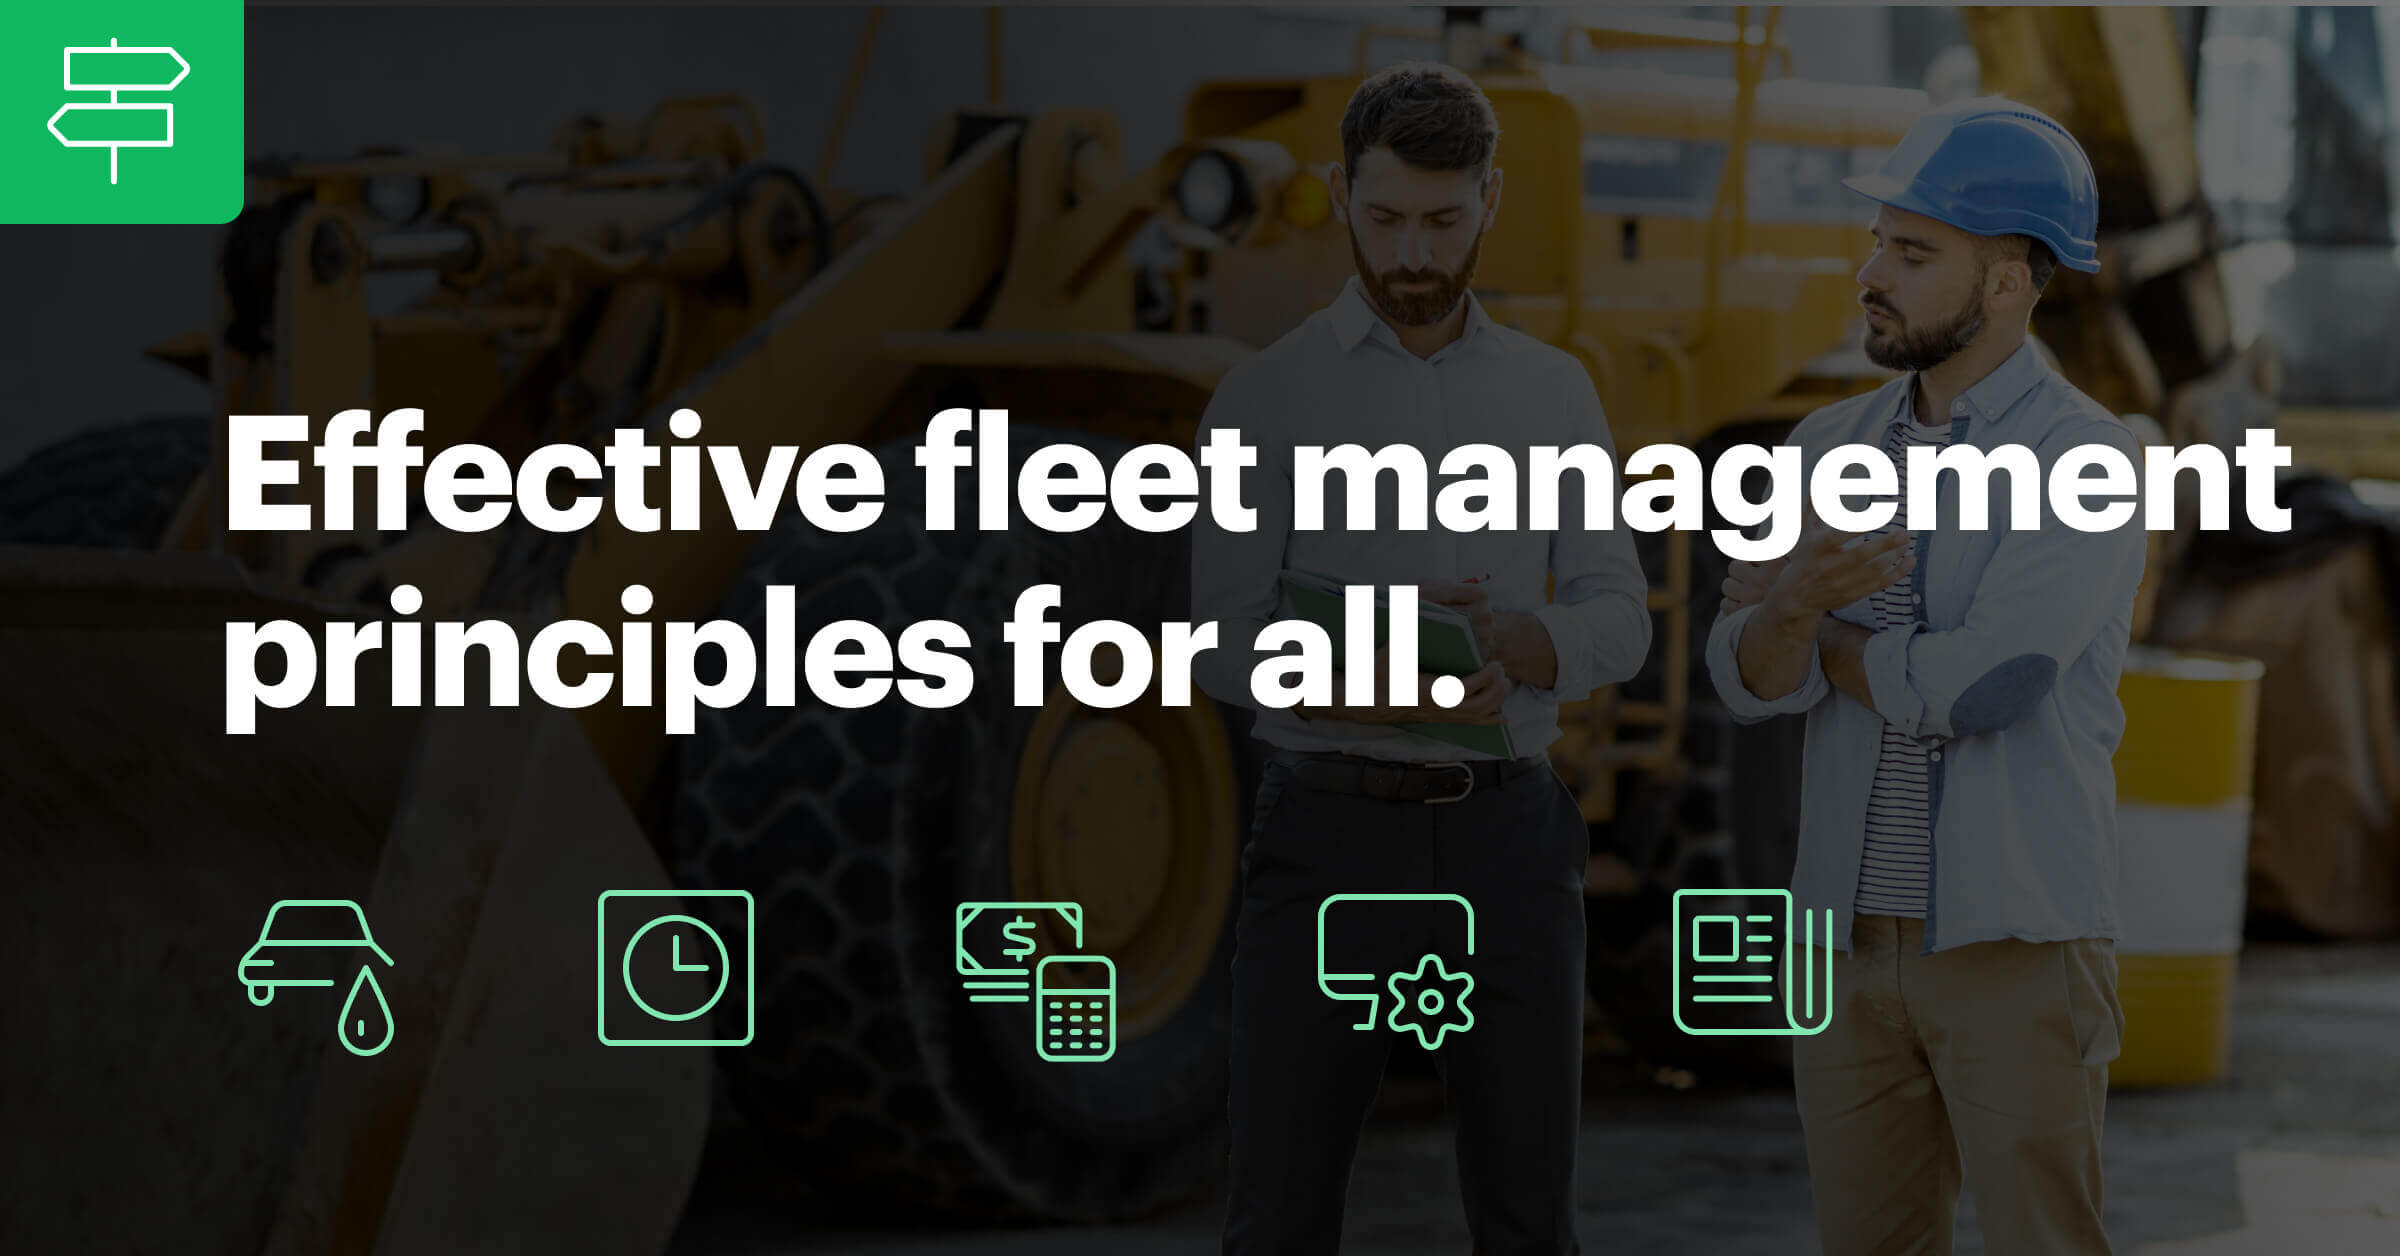 Non fleet managers